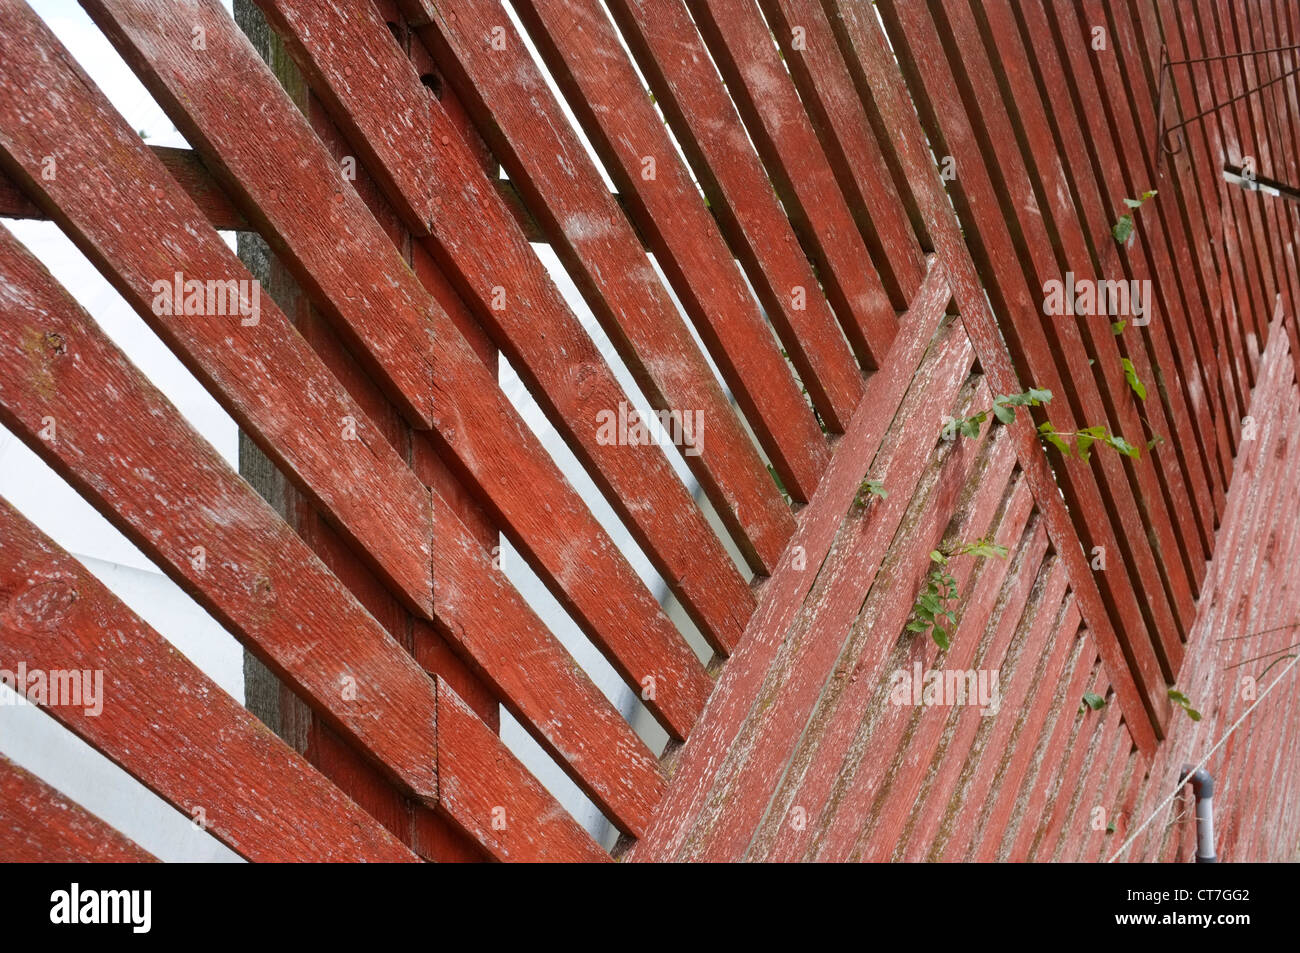 Cross hatched treated wooden fence - Close up detail. - Stock Image